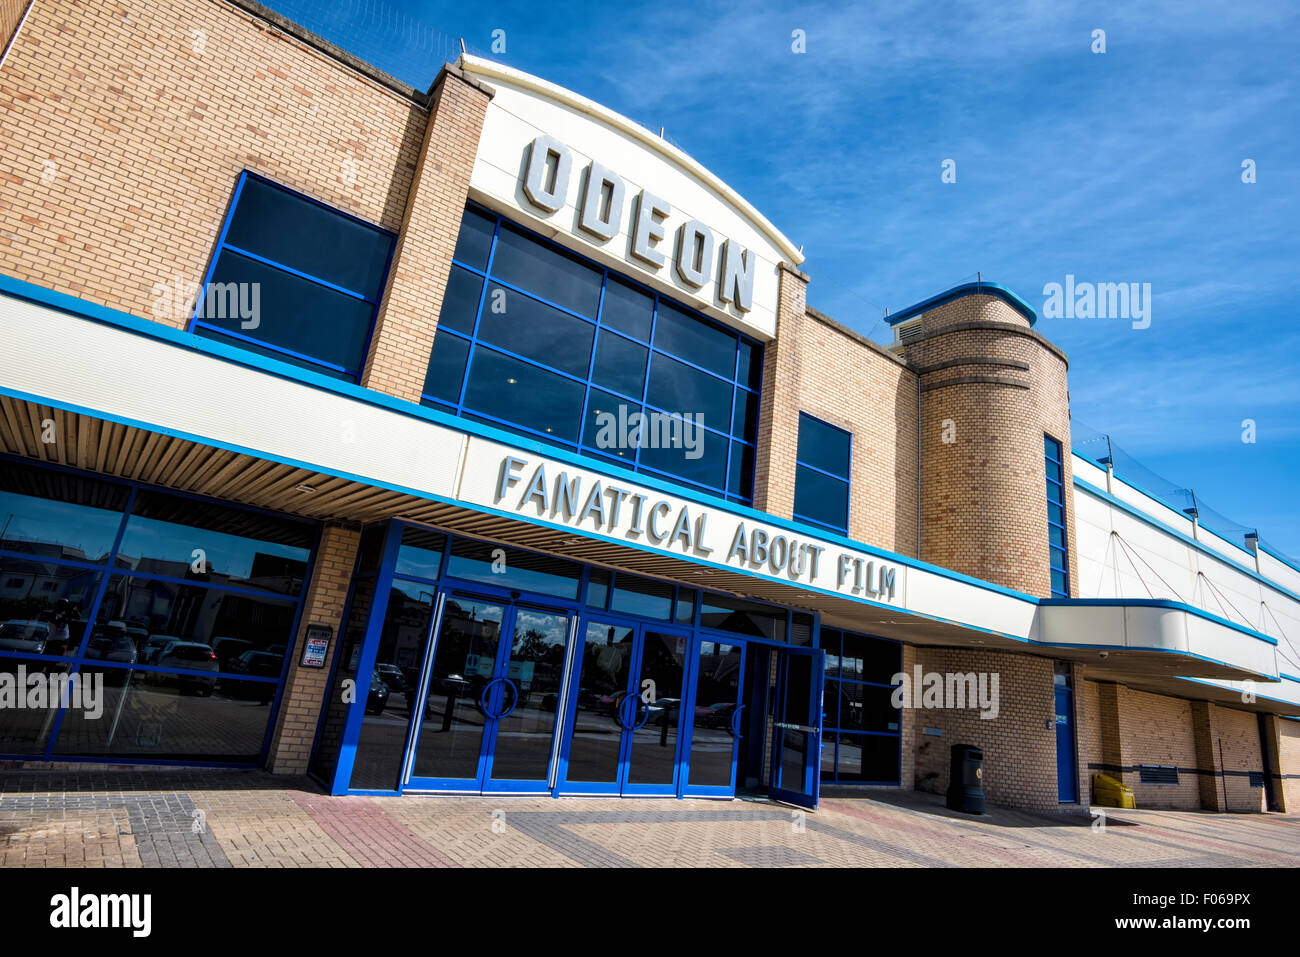 Outside of an Odeon Multiplex Cinema complex in Blackpool, Lancashire, UK - Stock Image